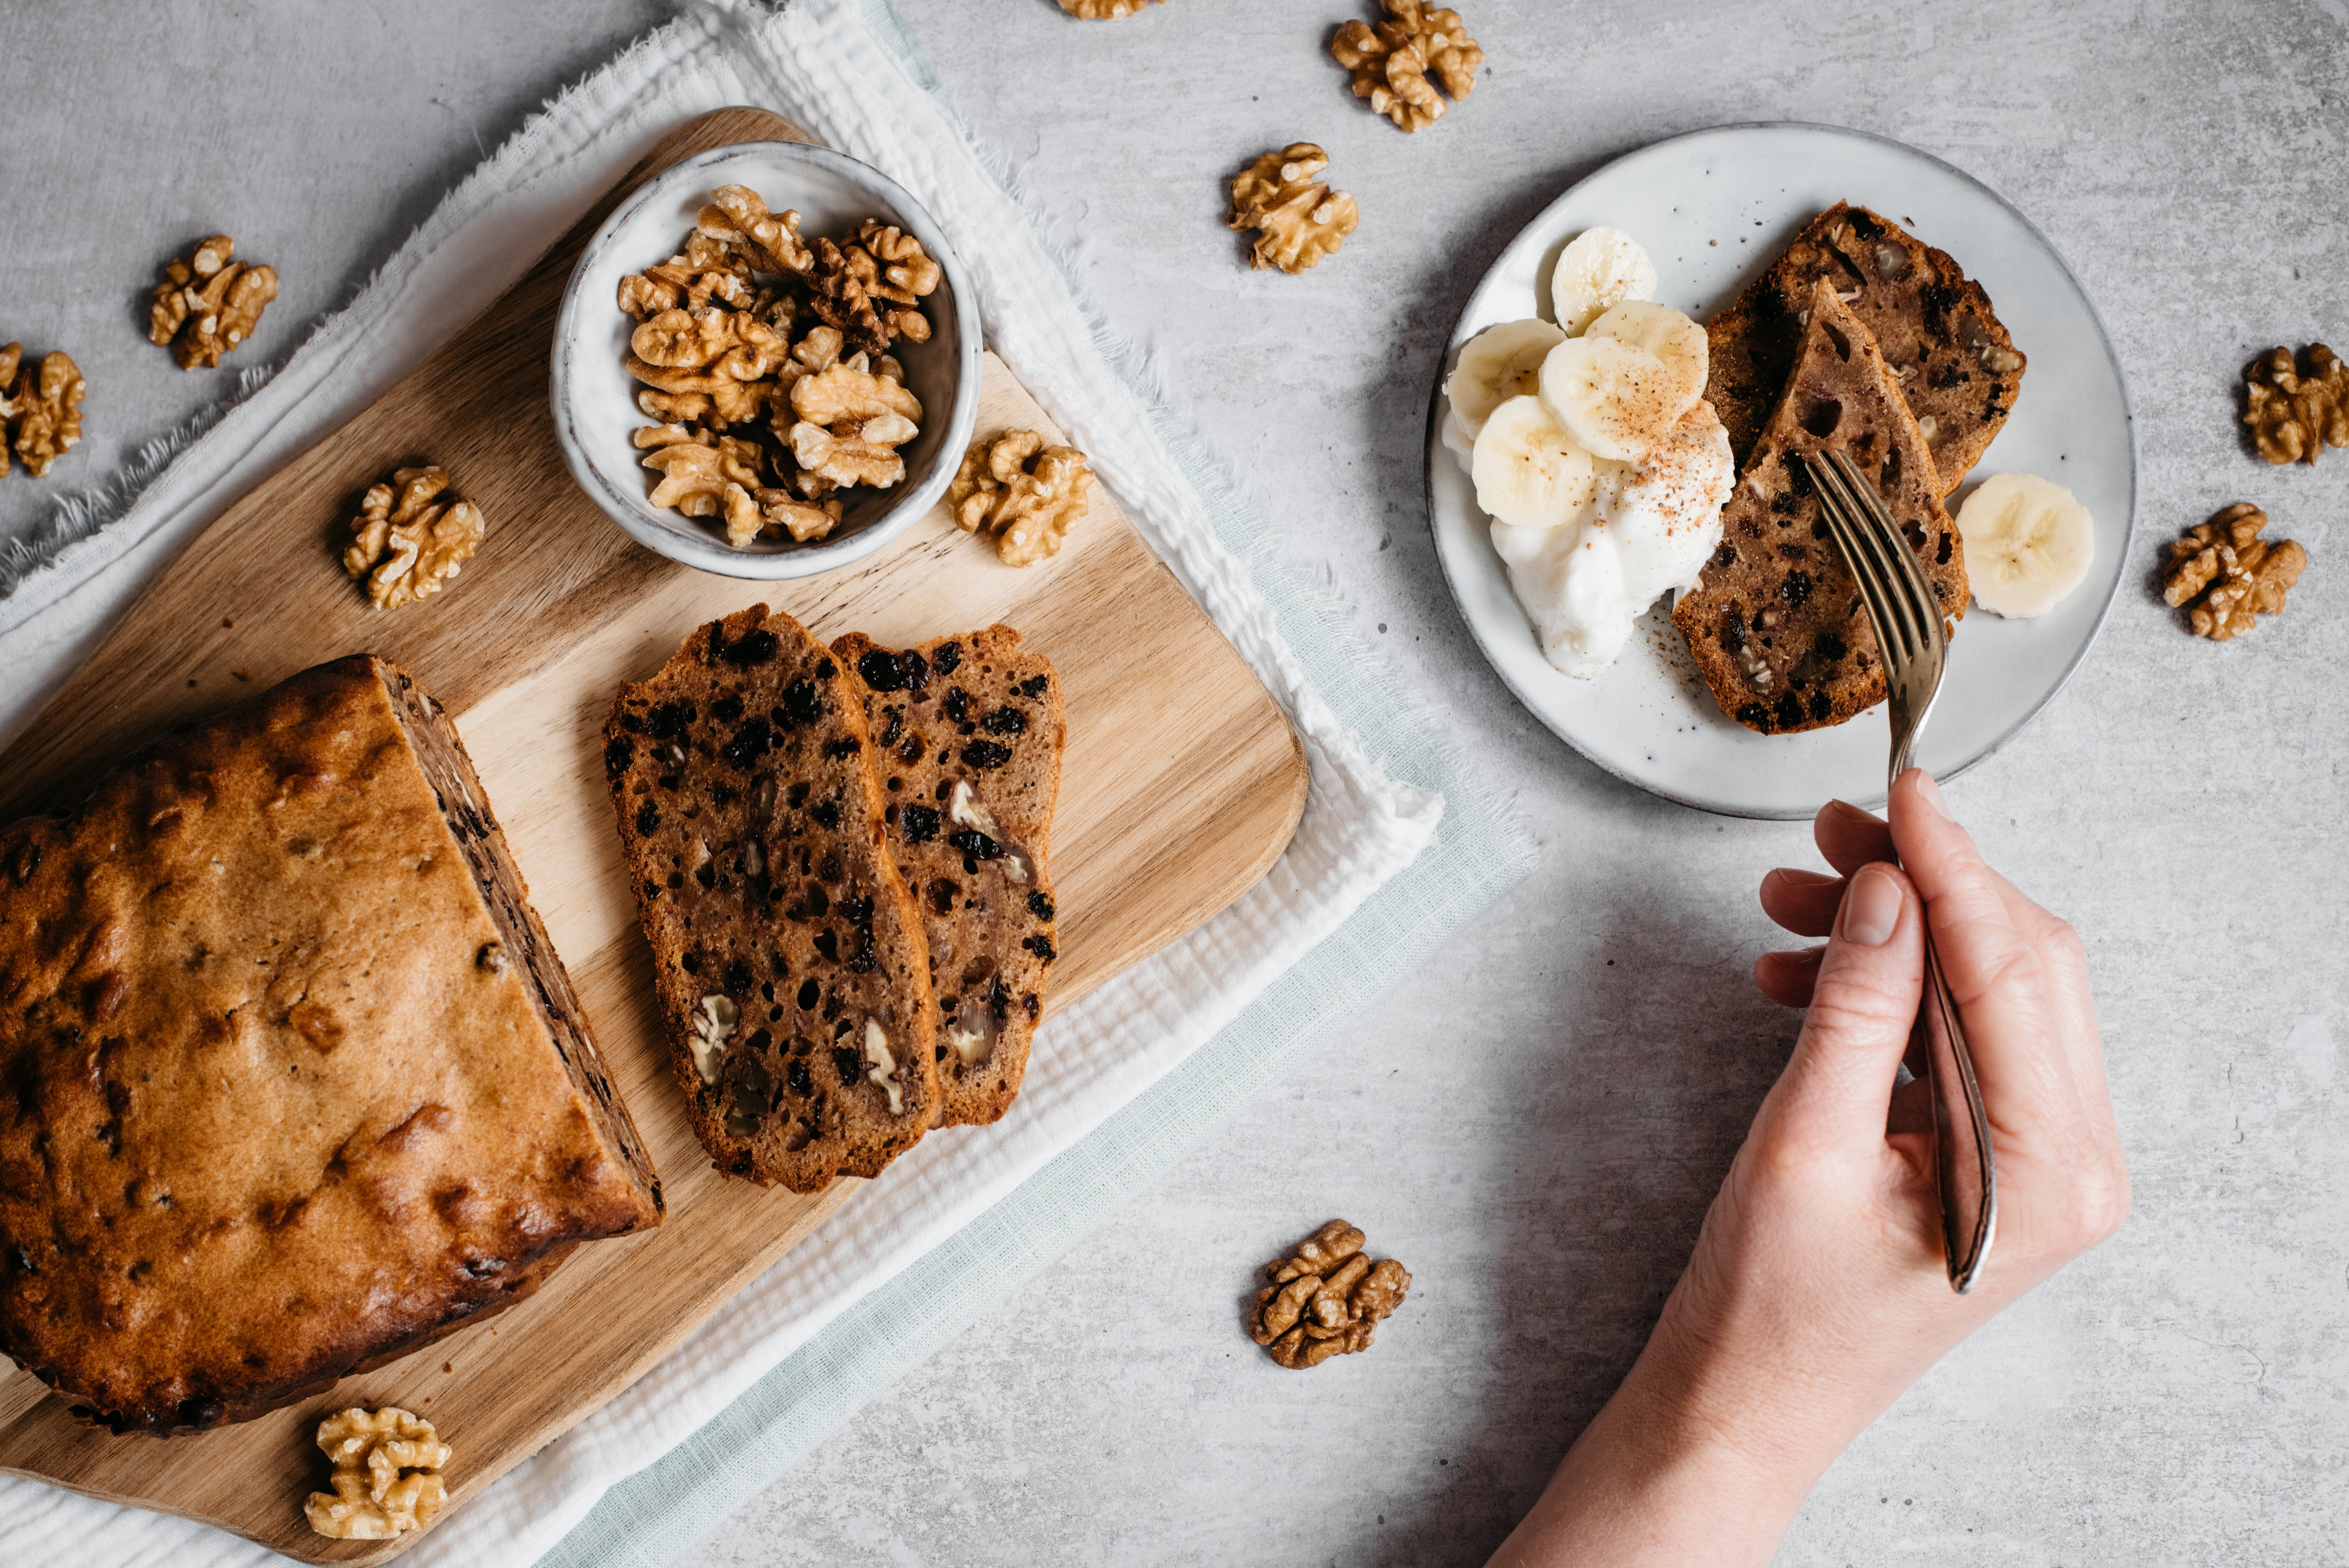 Overhead shot of banana bread loaf, slices infront, bowl of walnuts, plate with slices, fork and hand